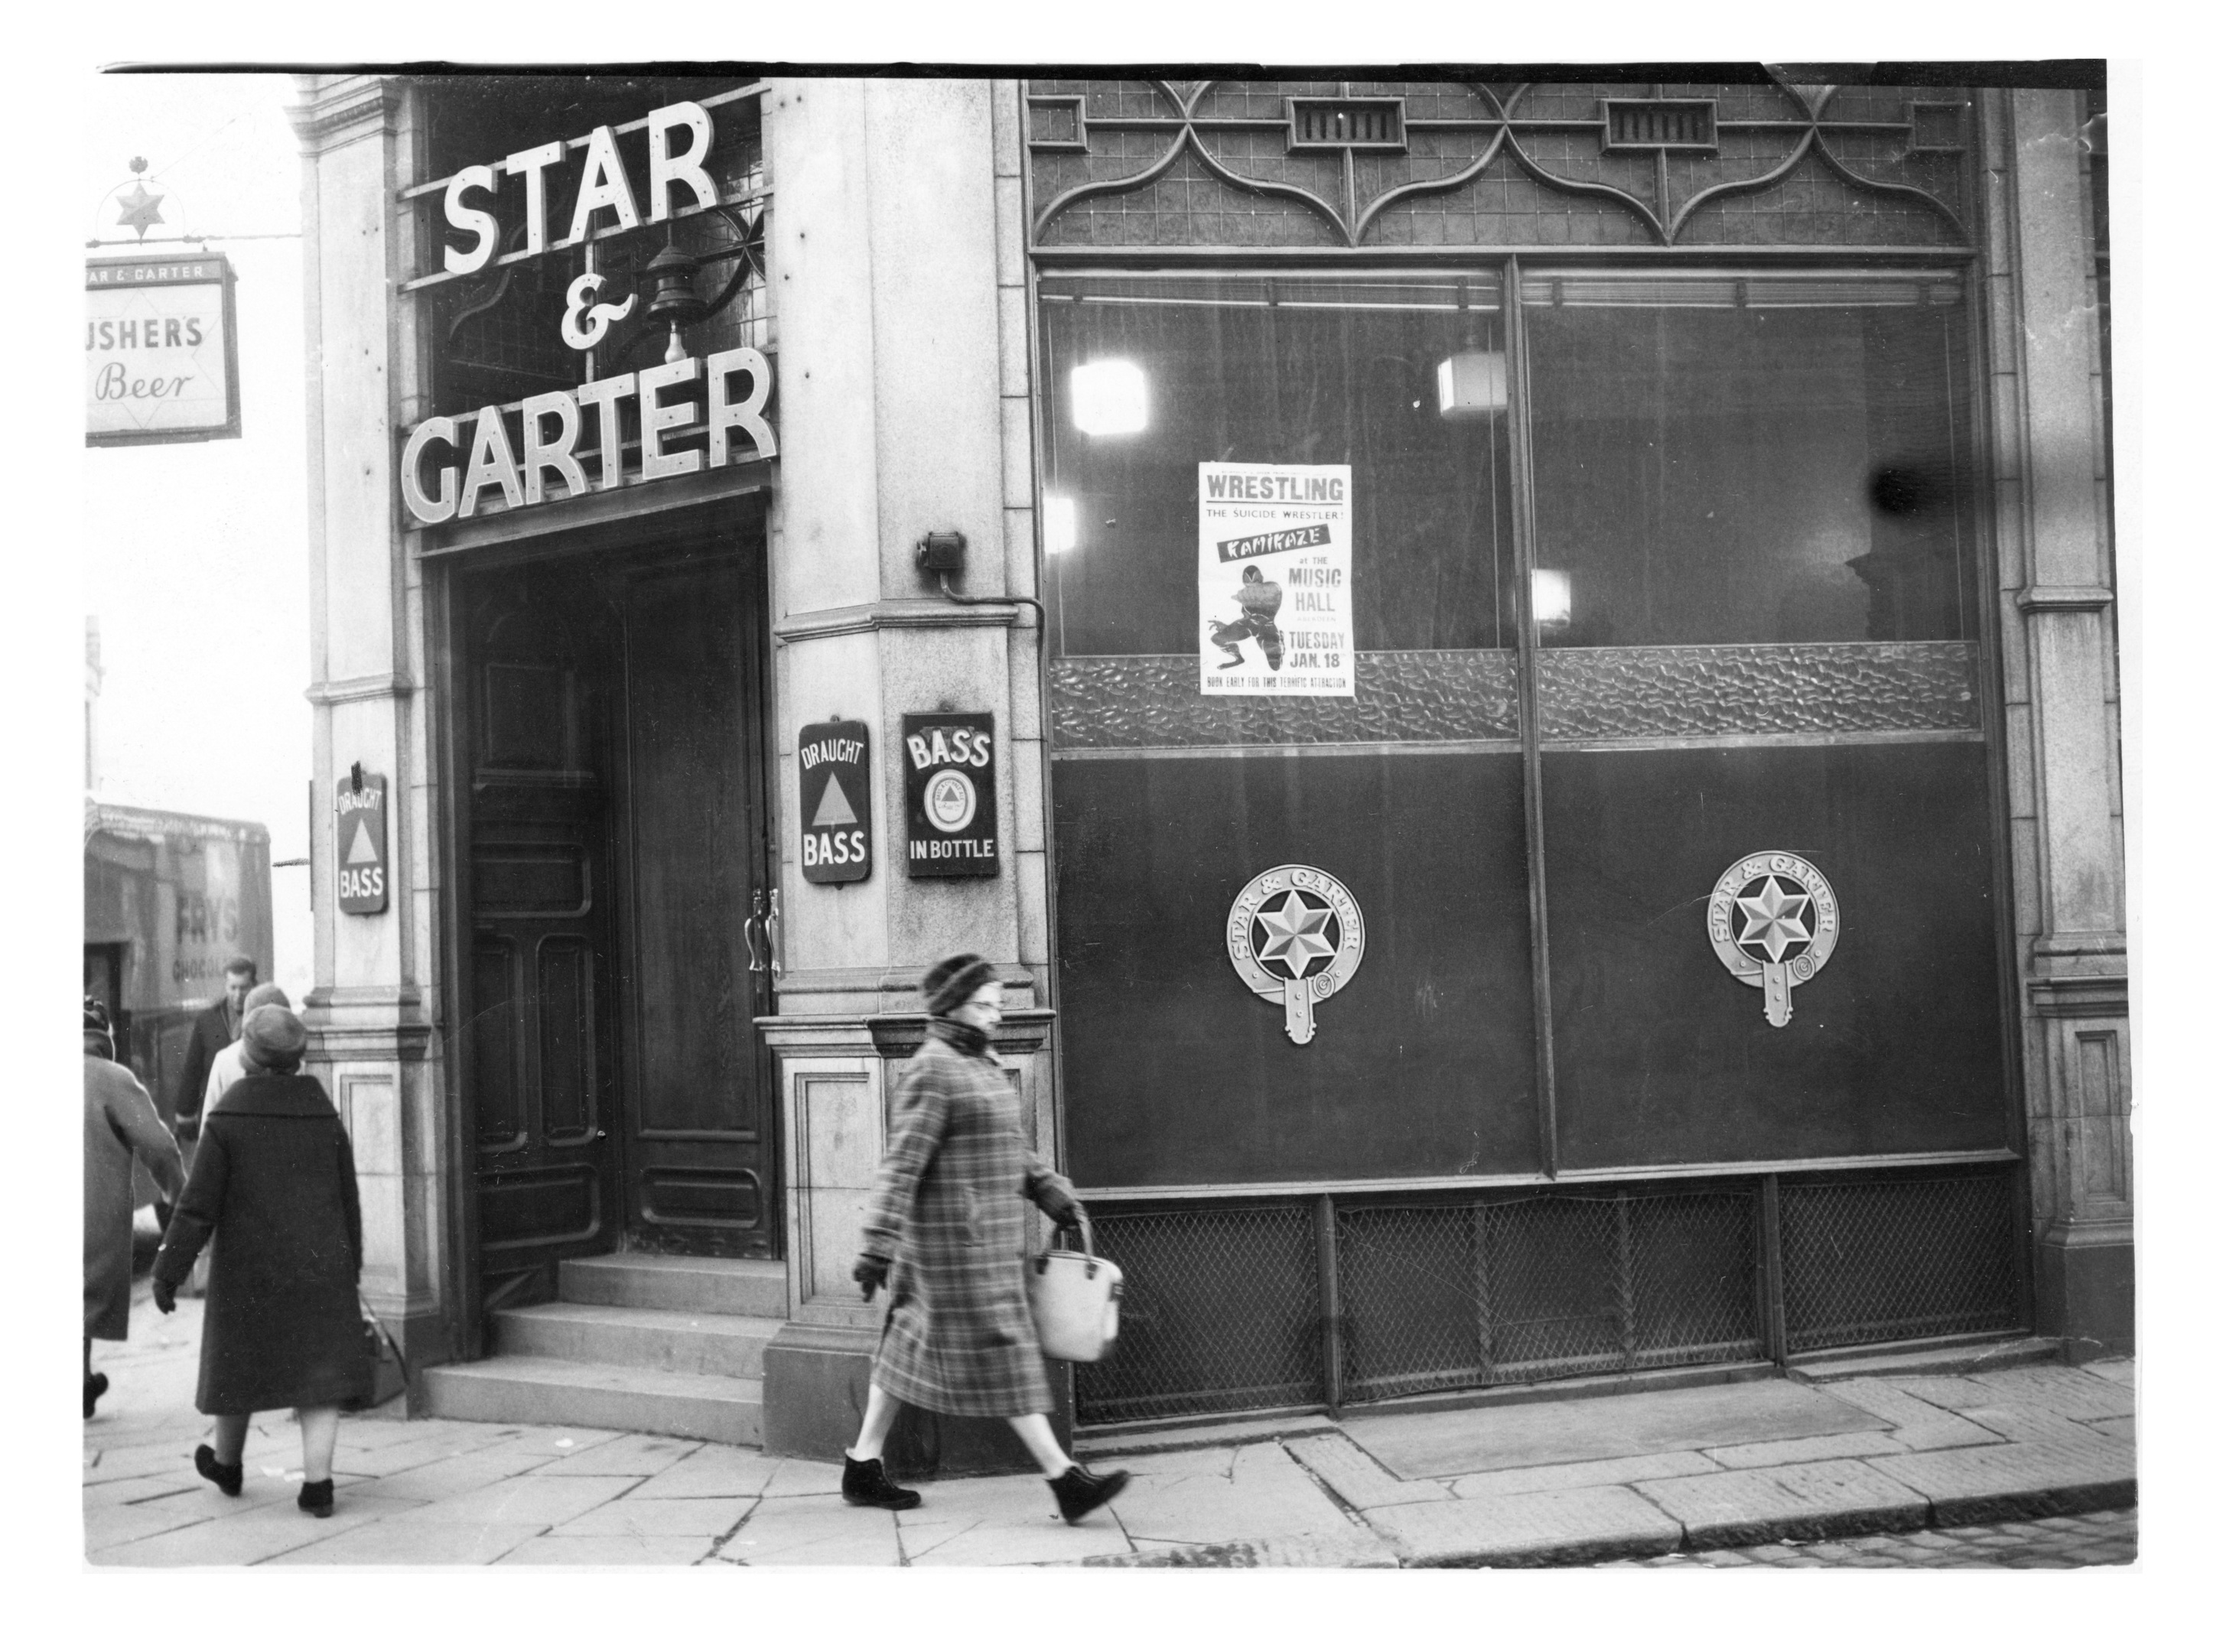 The Star and Garter public house in Langstane Place, Aberdeen, in 1966.